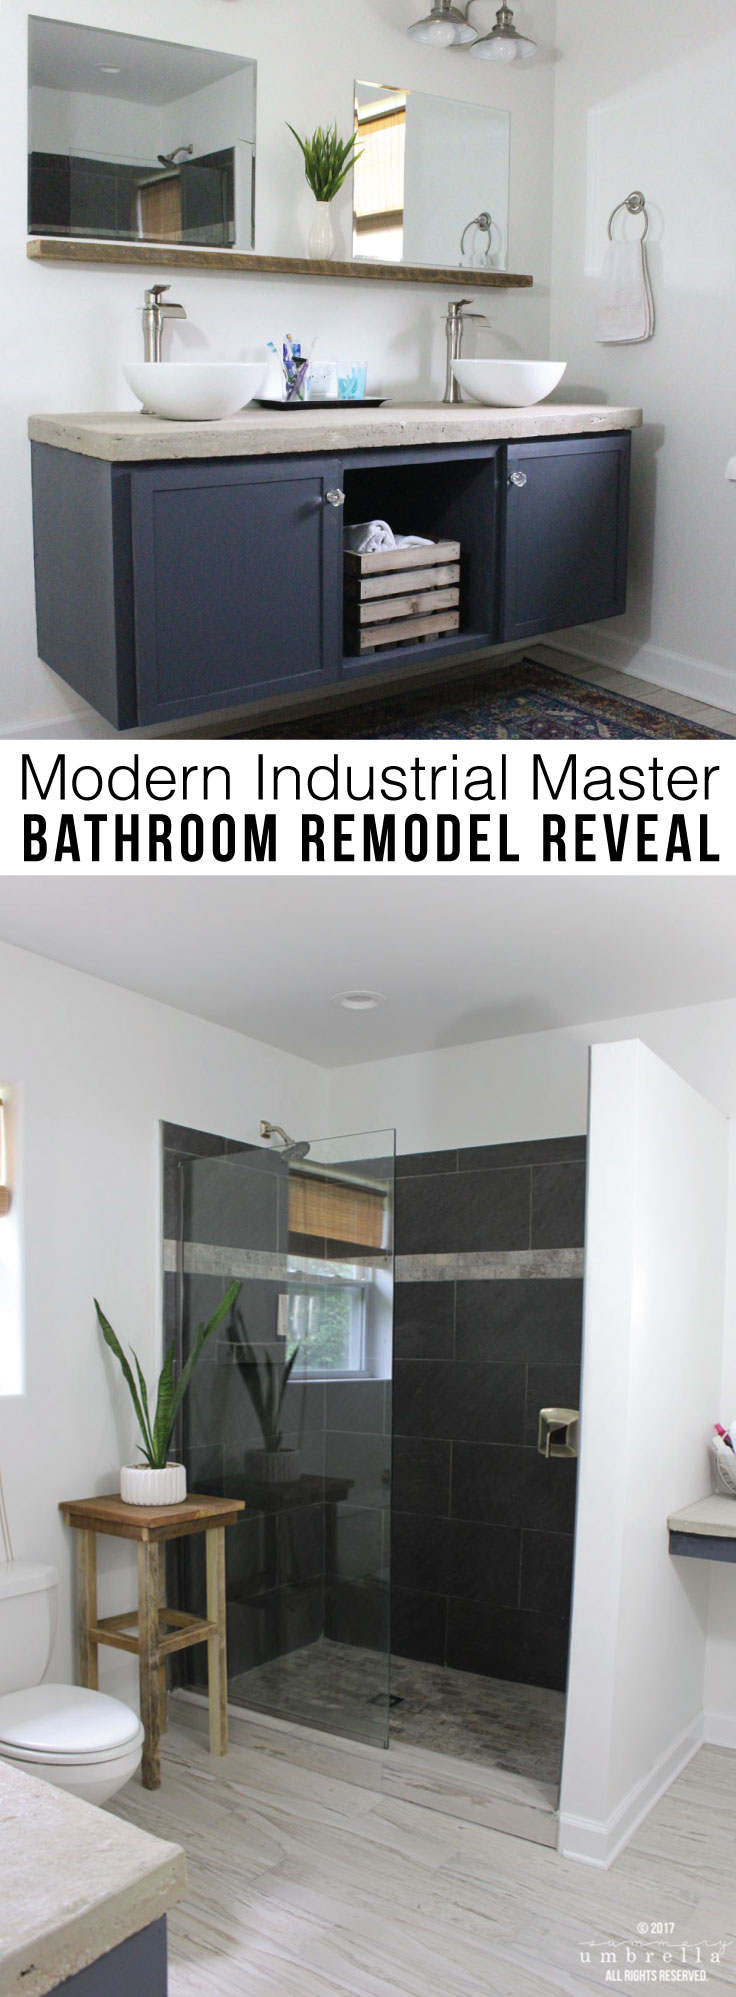 Come join me as I reveal my modern industrial master bathroom remodel. MUST PIN!